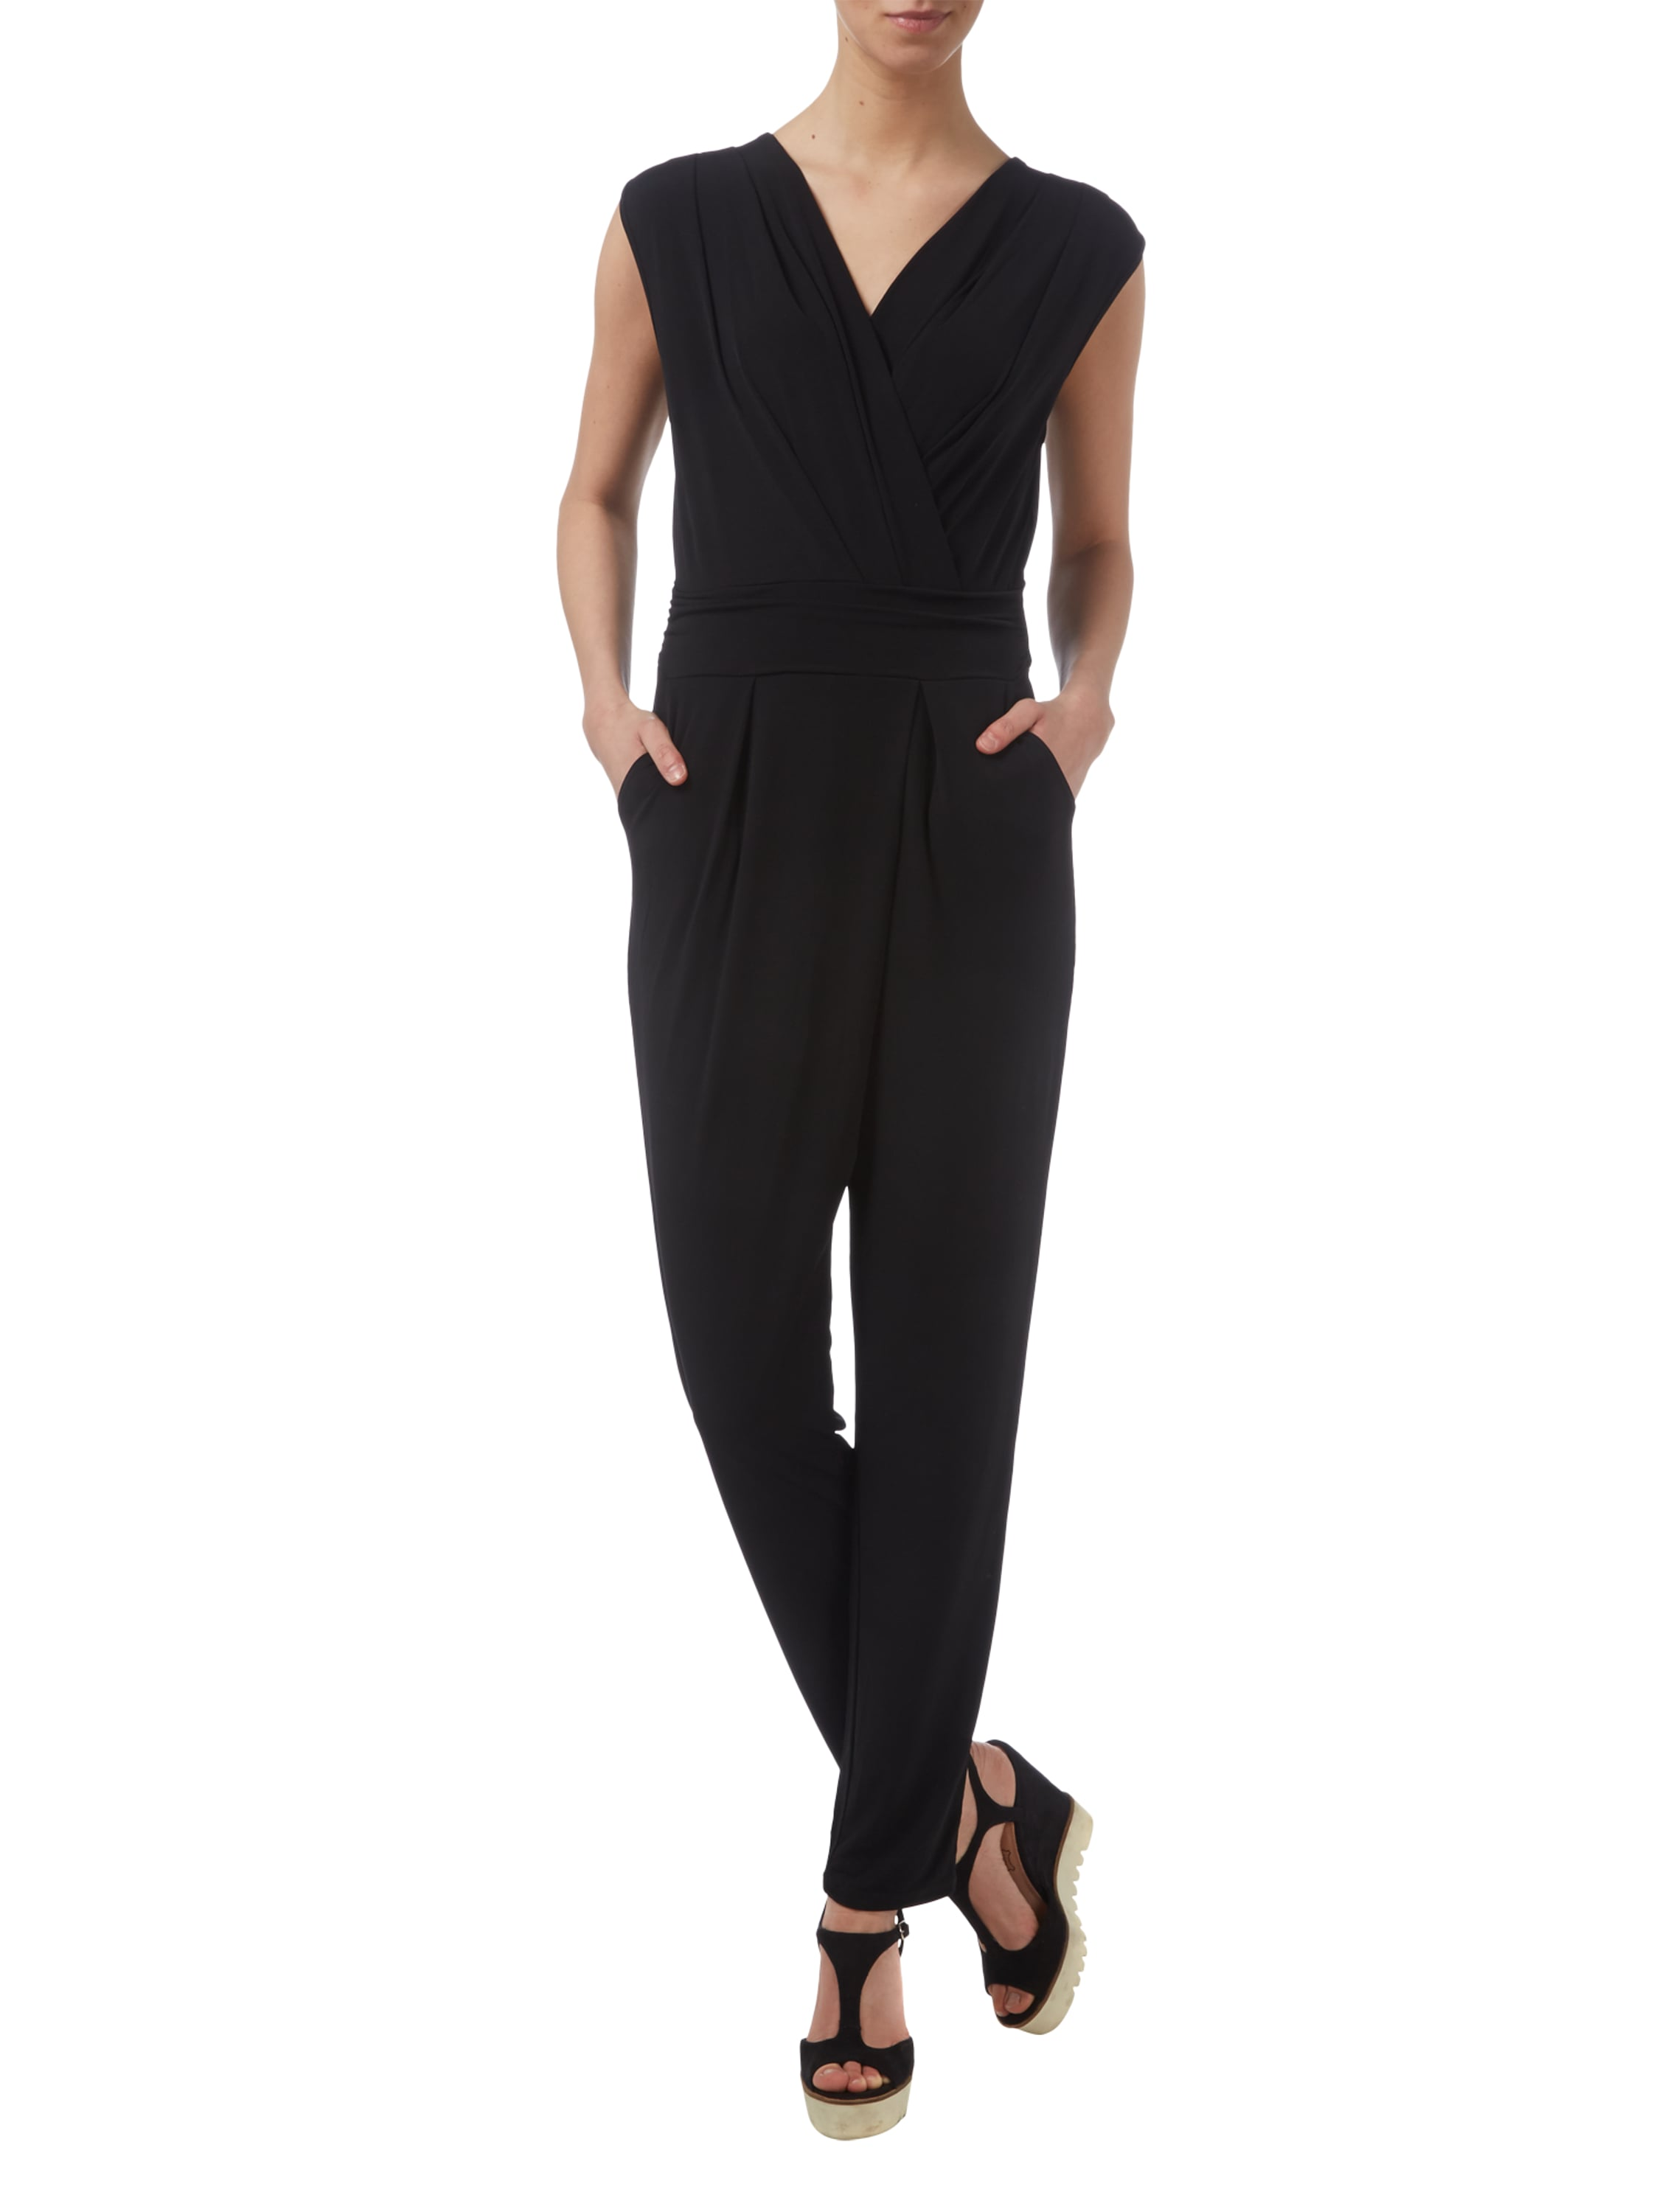 esprit collection jumpsuit aus jersey in wickeloptik in grau schwarz online kaufen 9444094. Black Bedroom Furniture Sets. Home Design Ideas